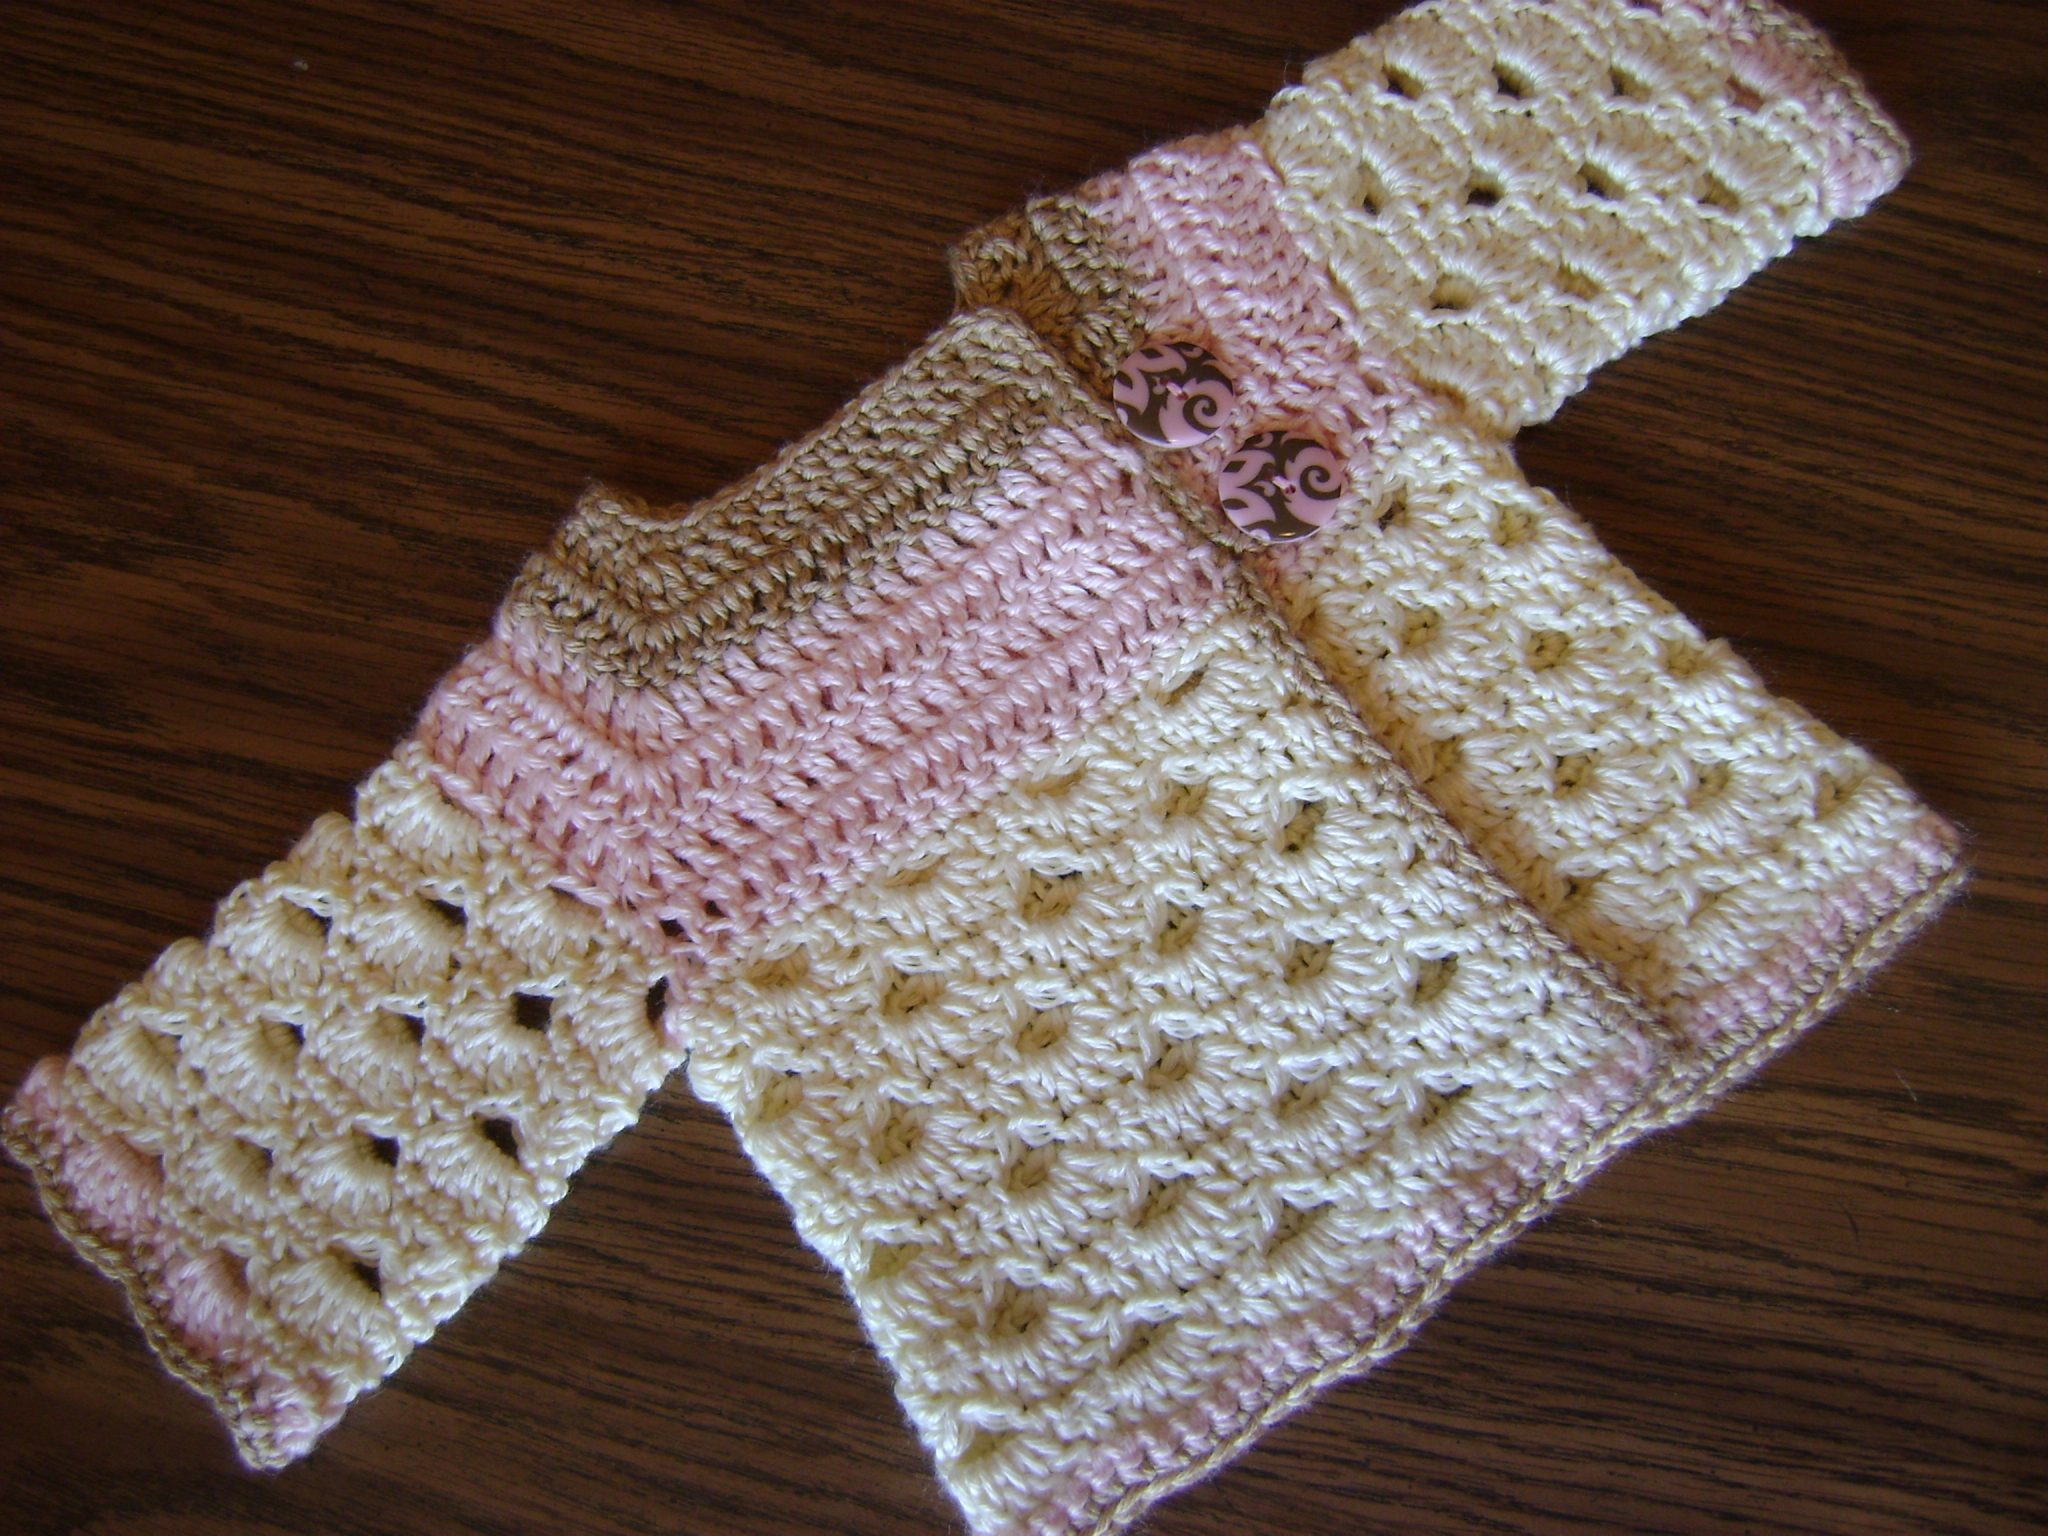 Crochet Newborn Baby Sweater Free Pattern : Auntie Ms Abigails Baby Sweater has a new home!